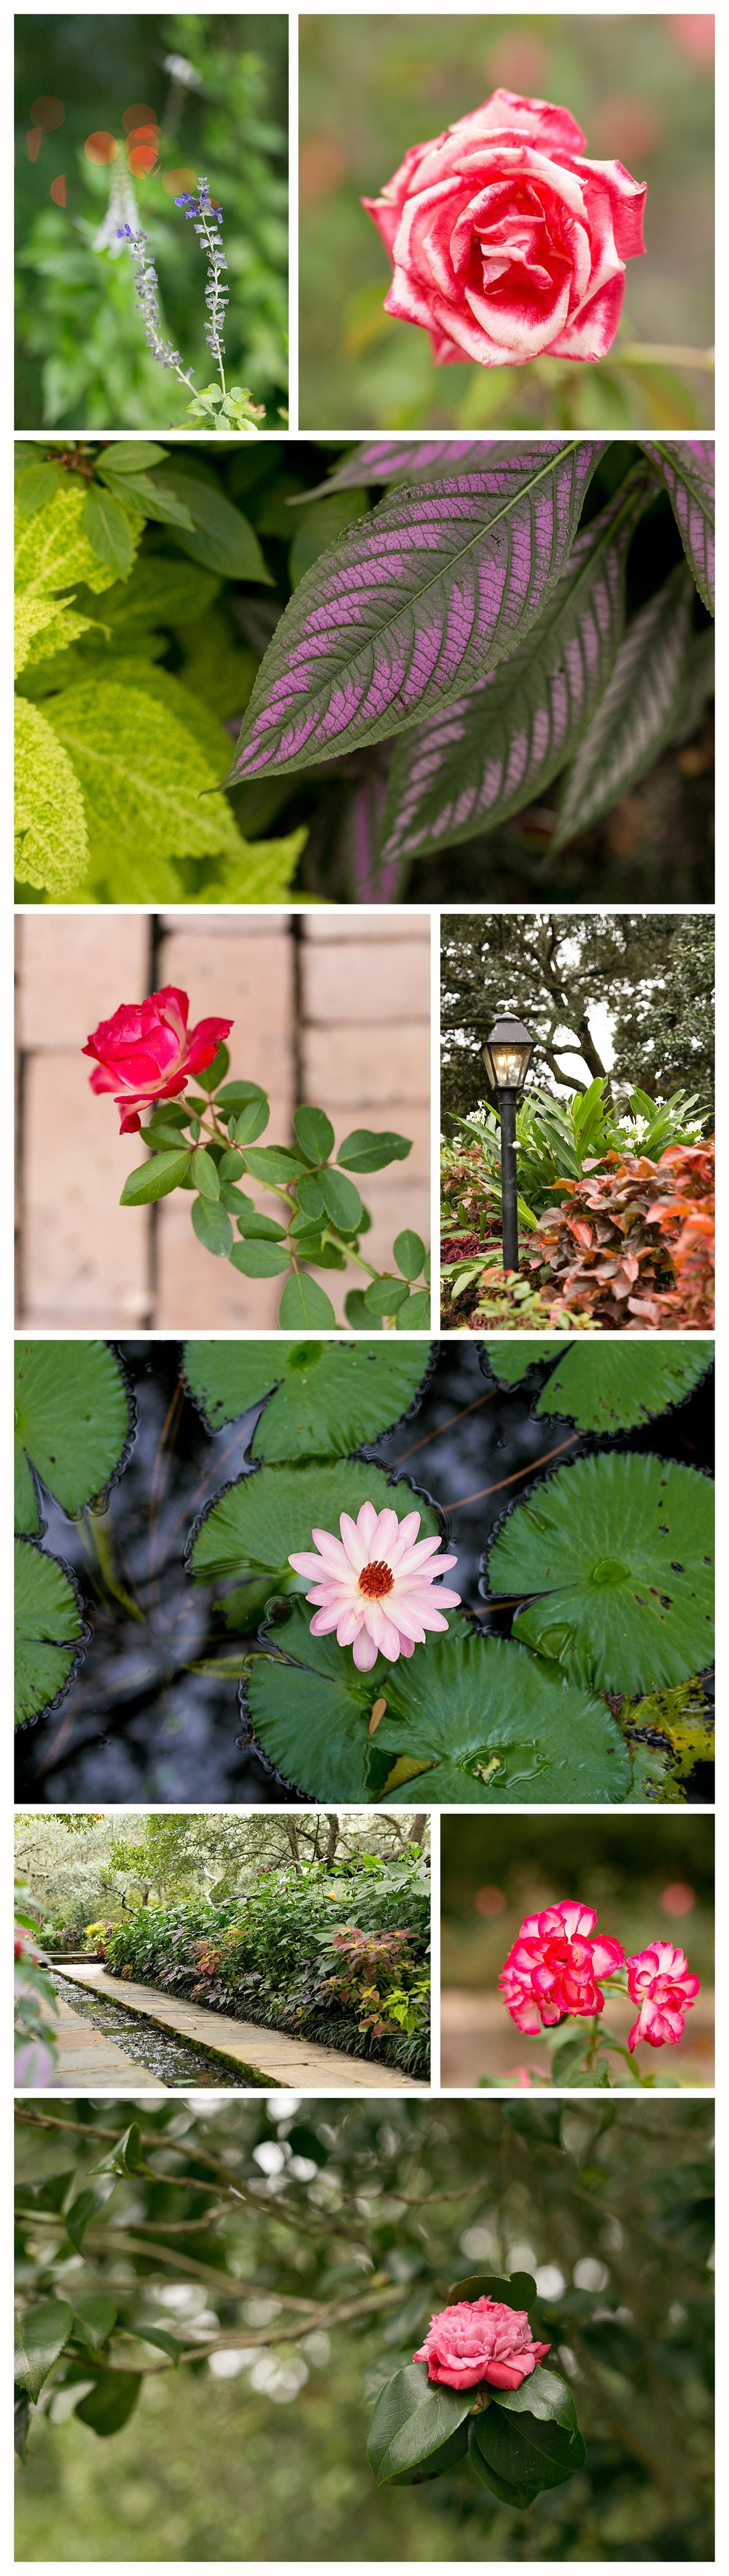 flowers at Bellingrath Gardens